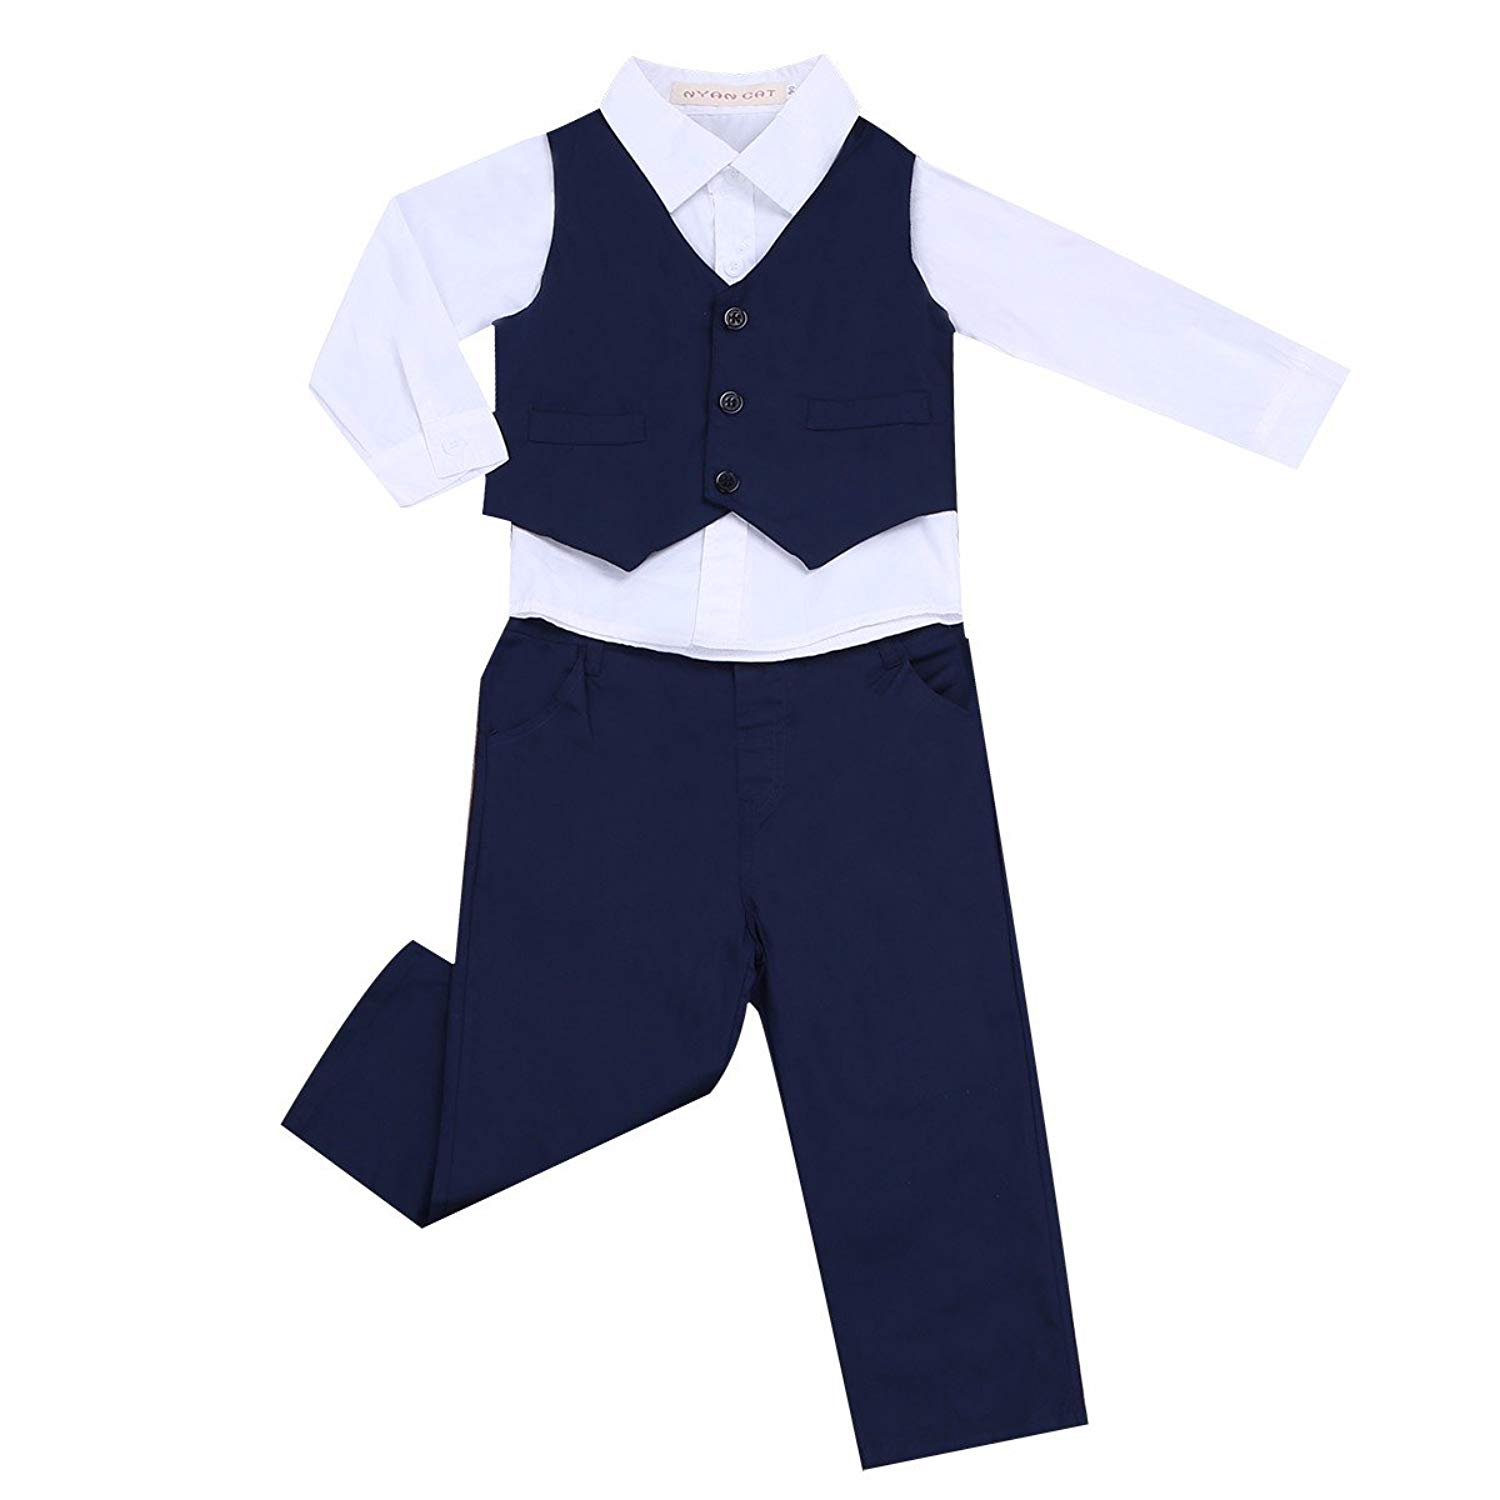 3190442383407 Get Quotations · FEESHOW 3Pcs Baby Boys Gentleman Tuxedo Outfits Long  Sleeve Top Shirt Pants with Vest Set